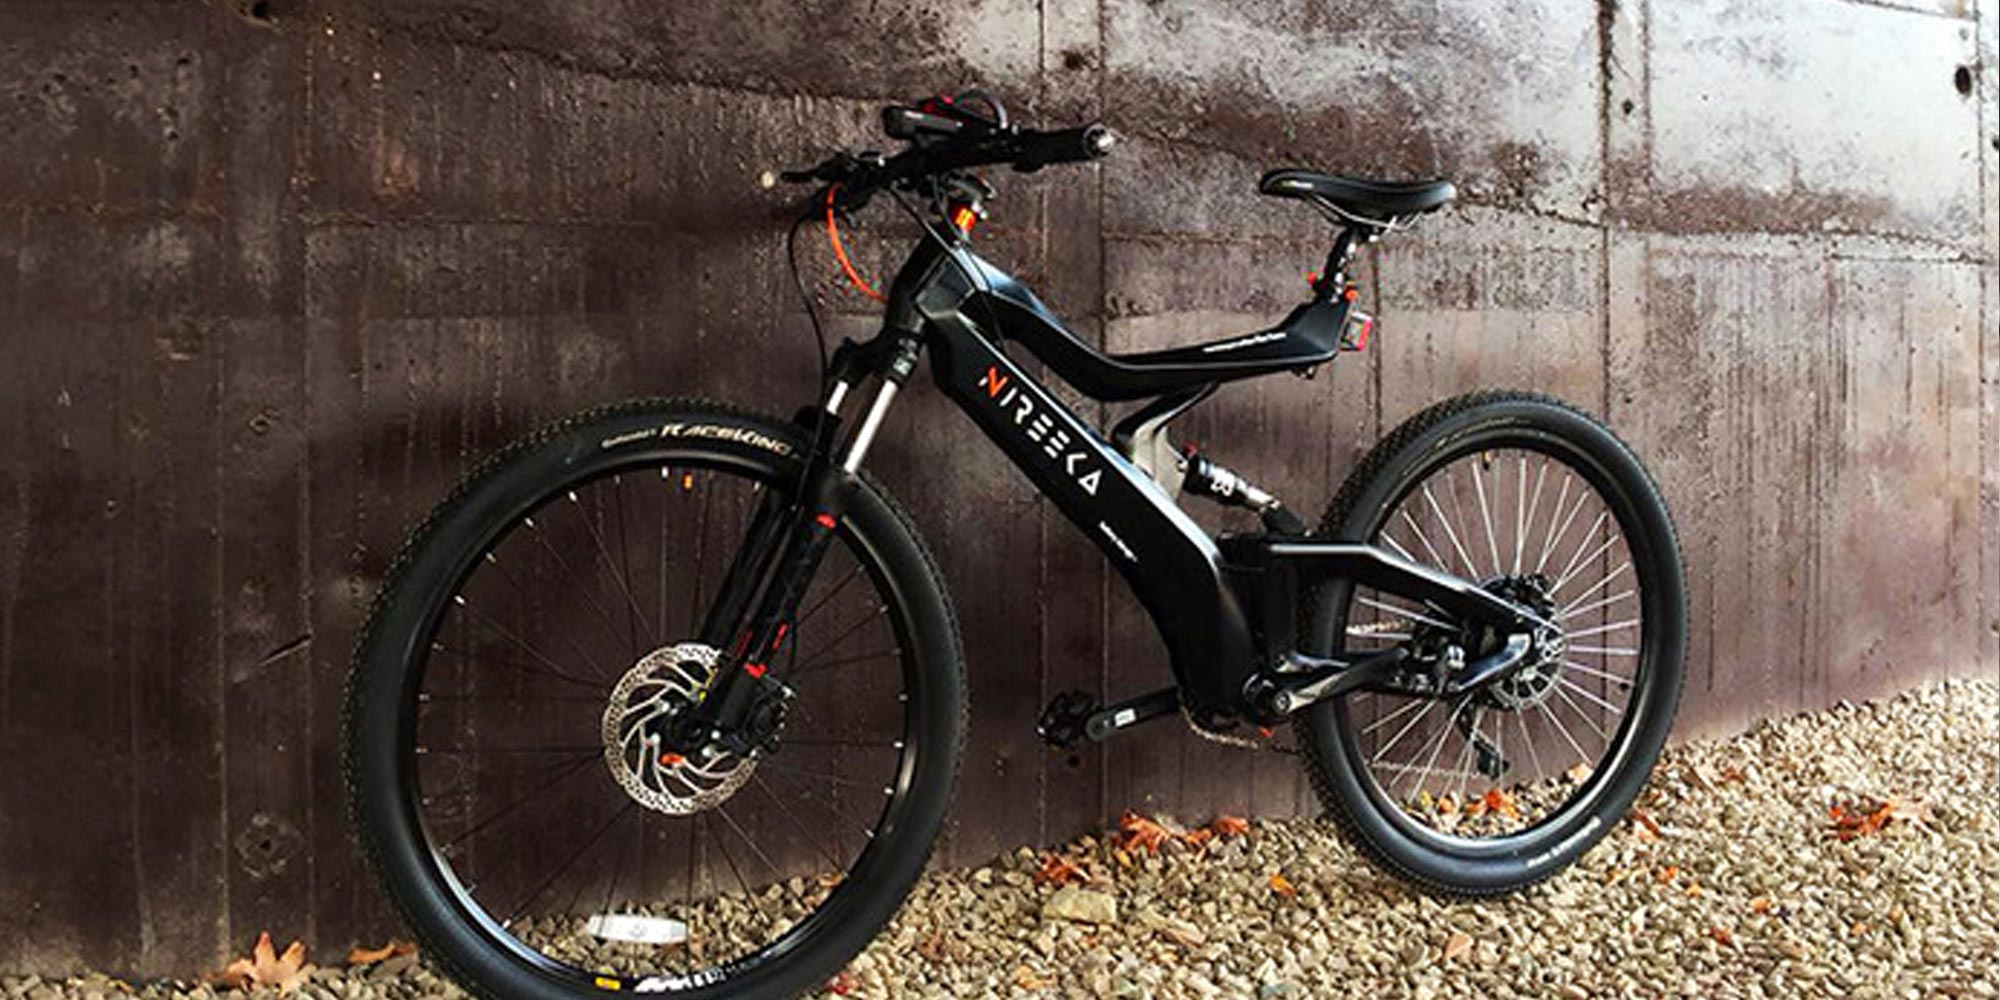 Nireeka is a smart eBike that can change its assist level based on your heartrate, more